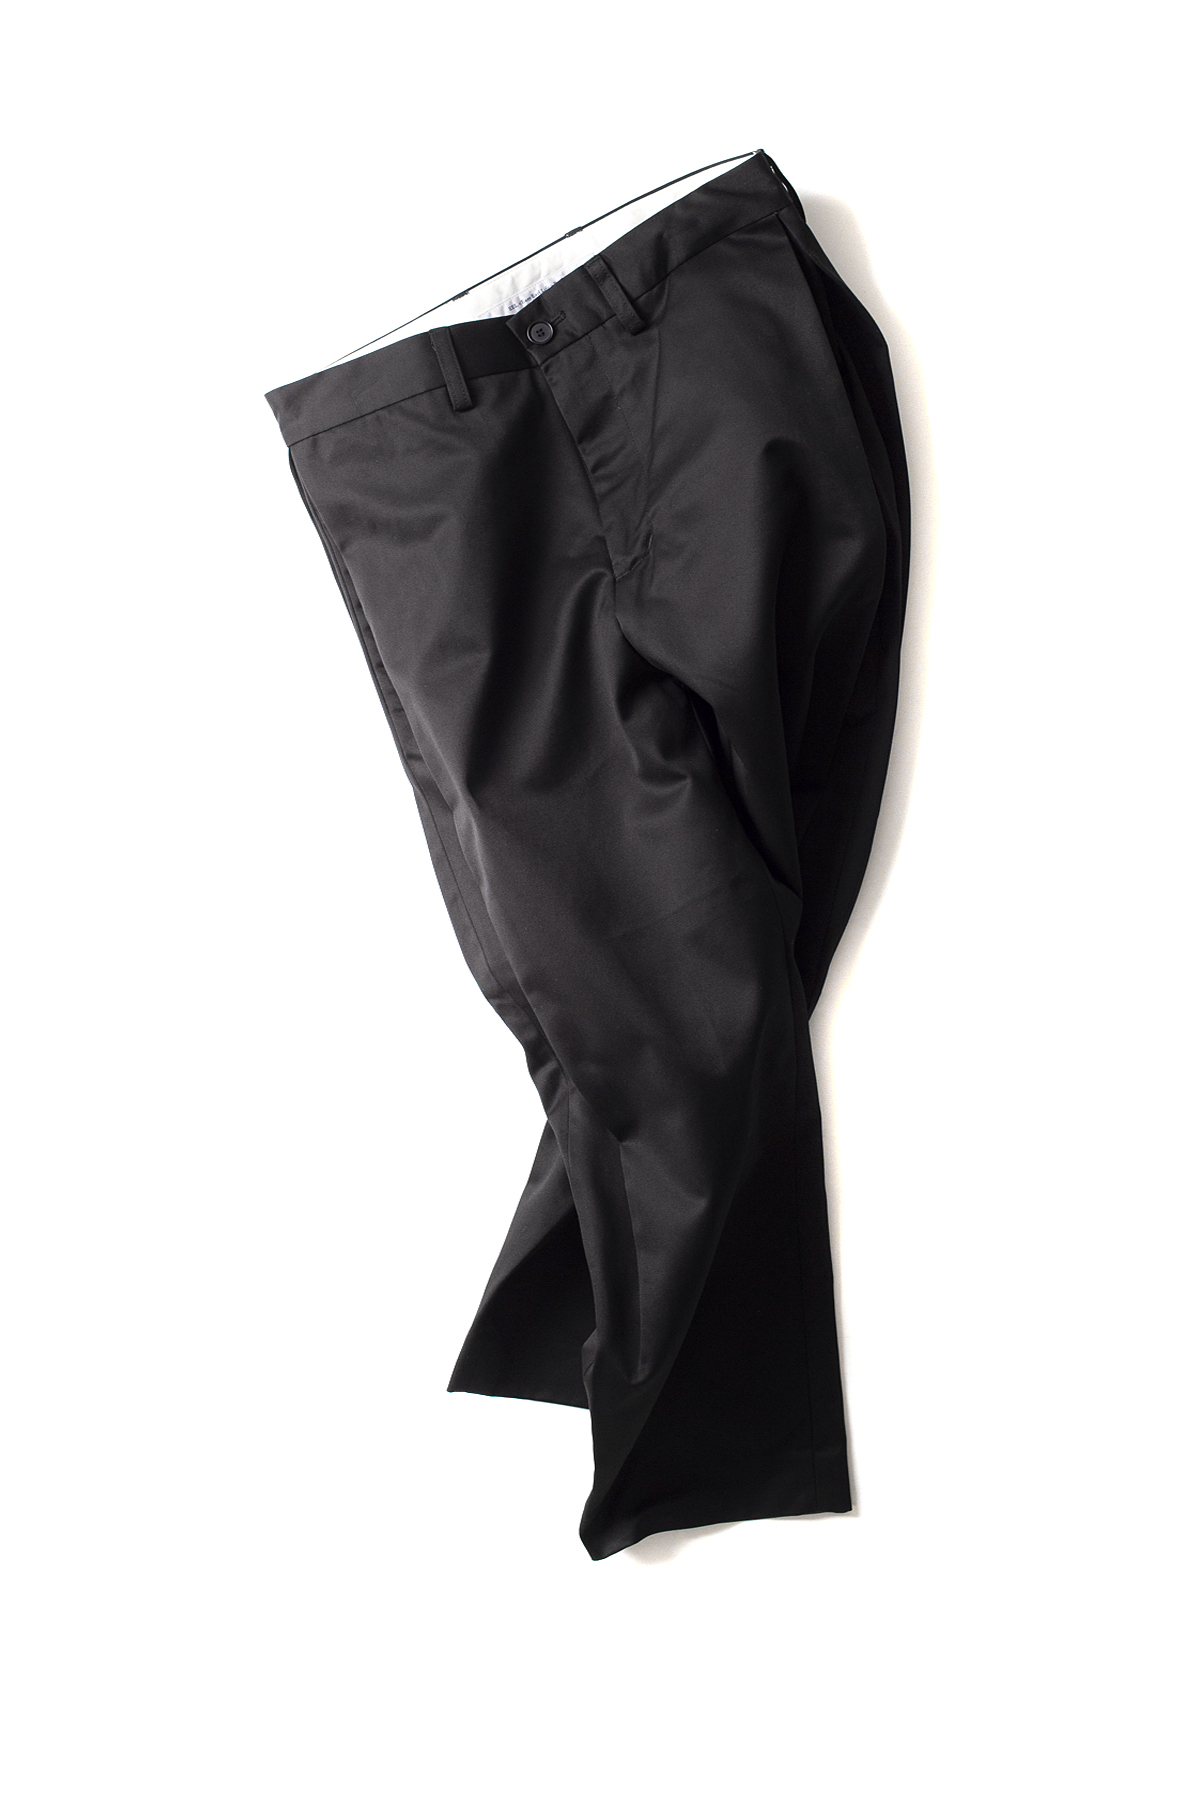 EEL : ST Pants (Black)